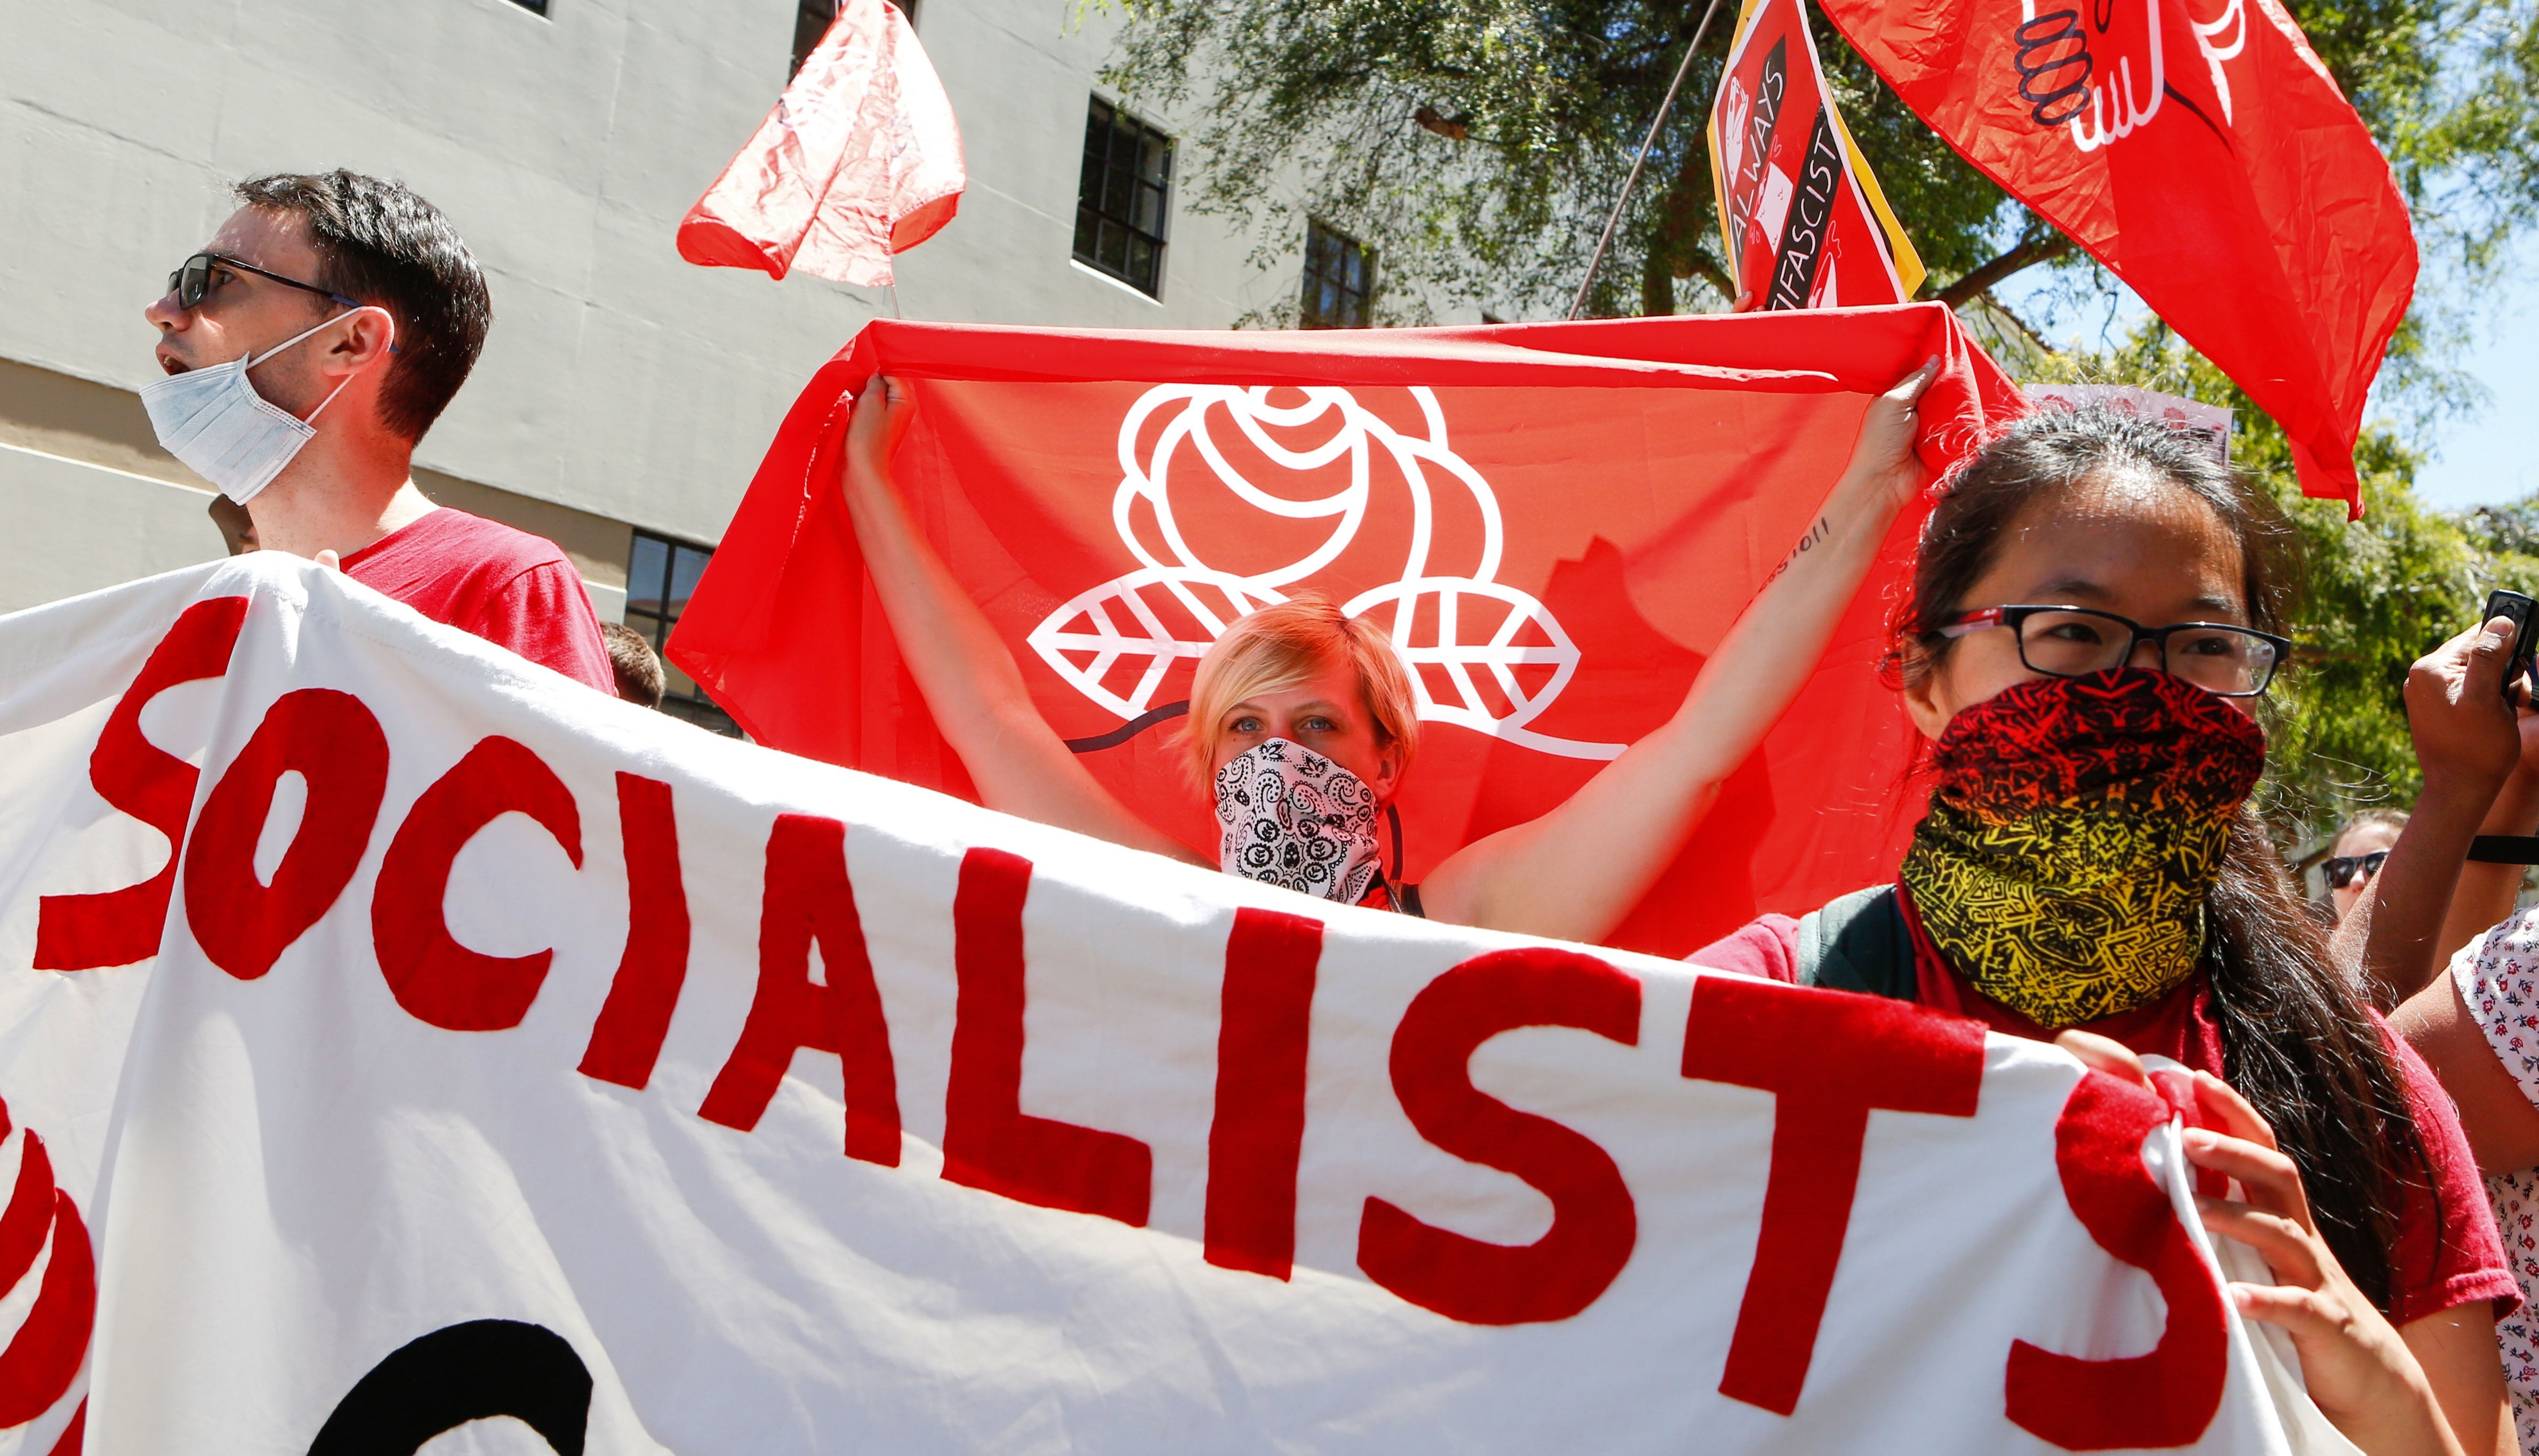 How 57,000 Socialists and Communists Are Planning to Take Over the